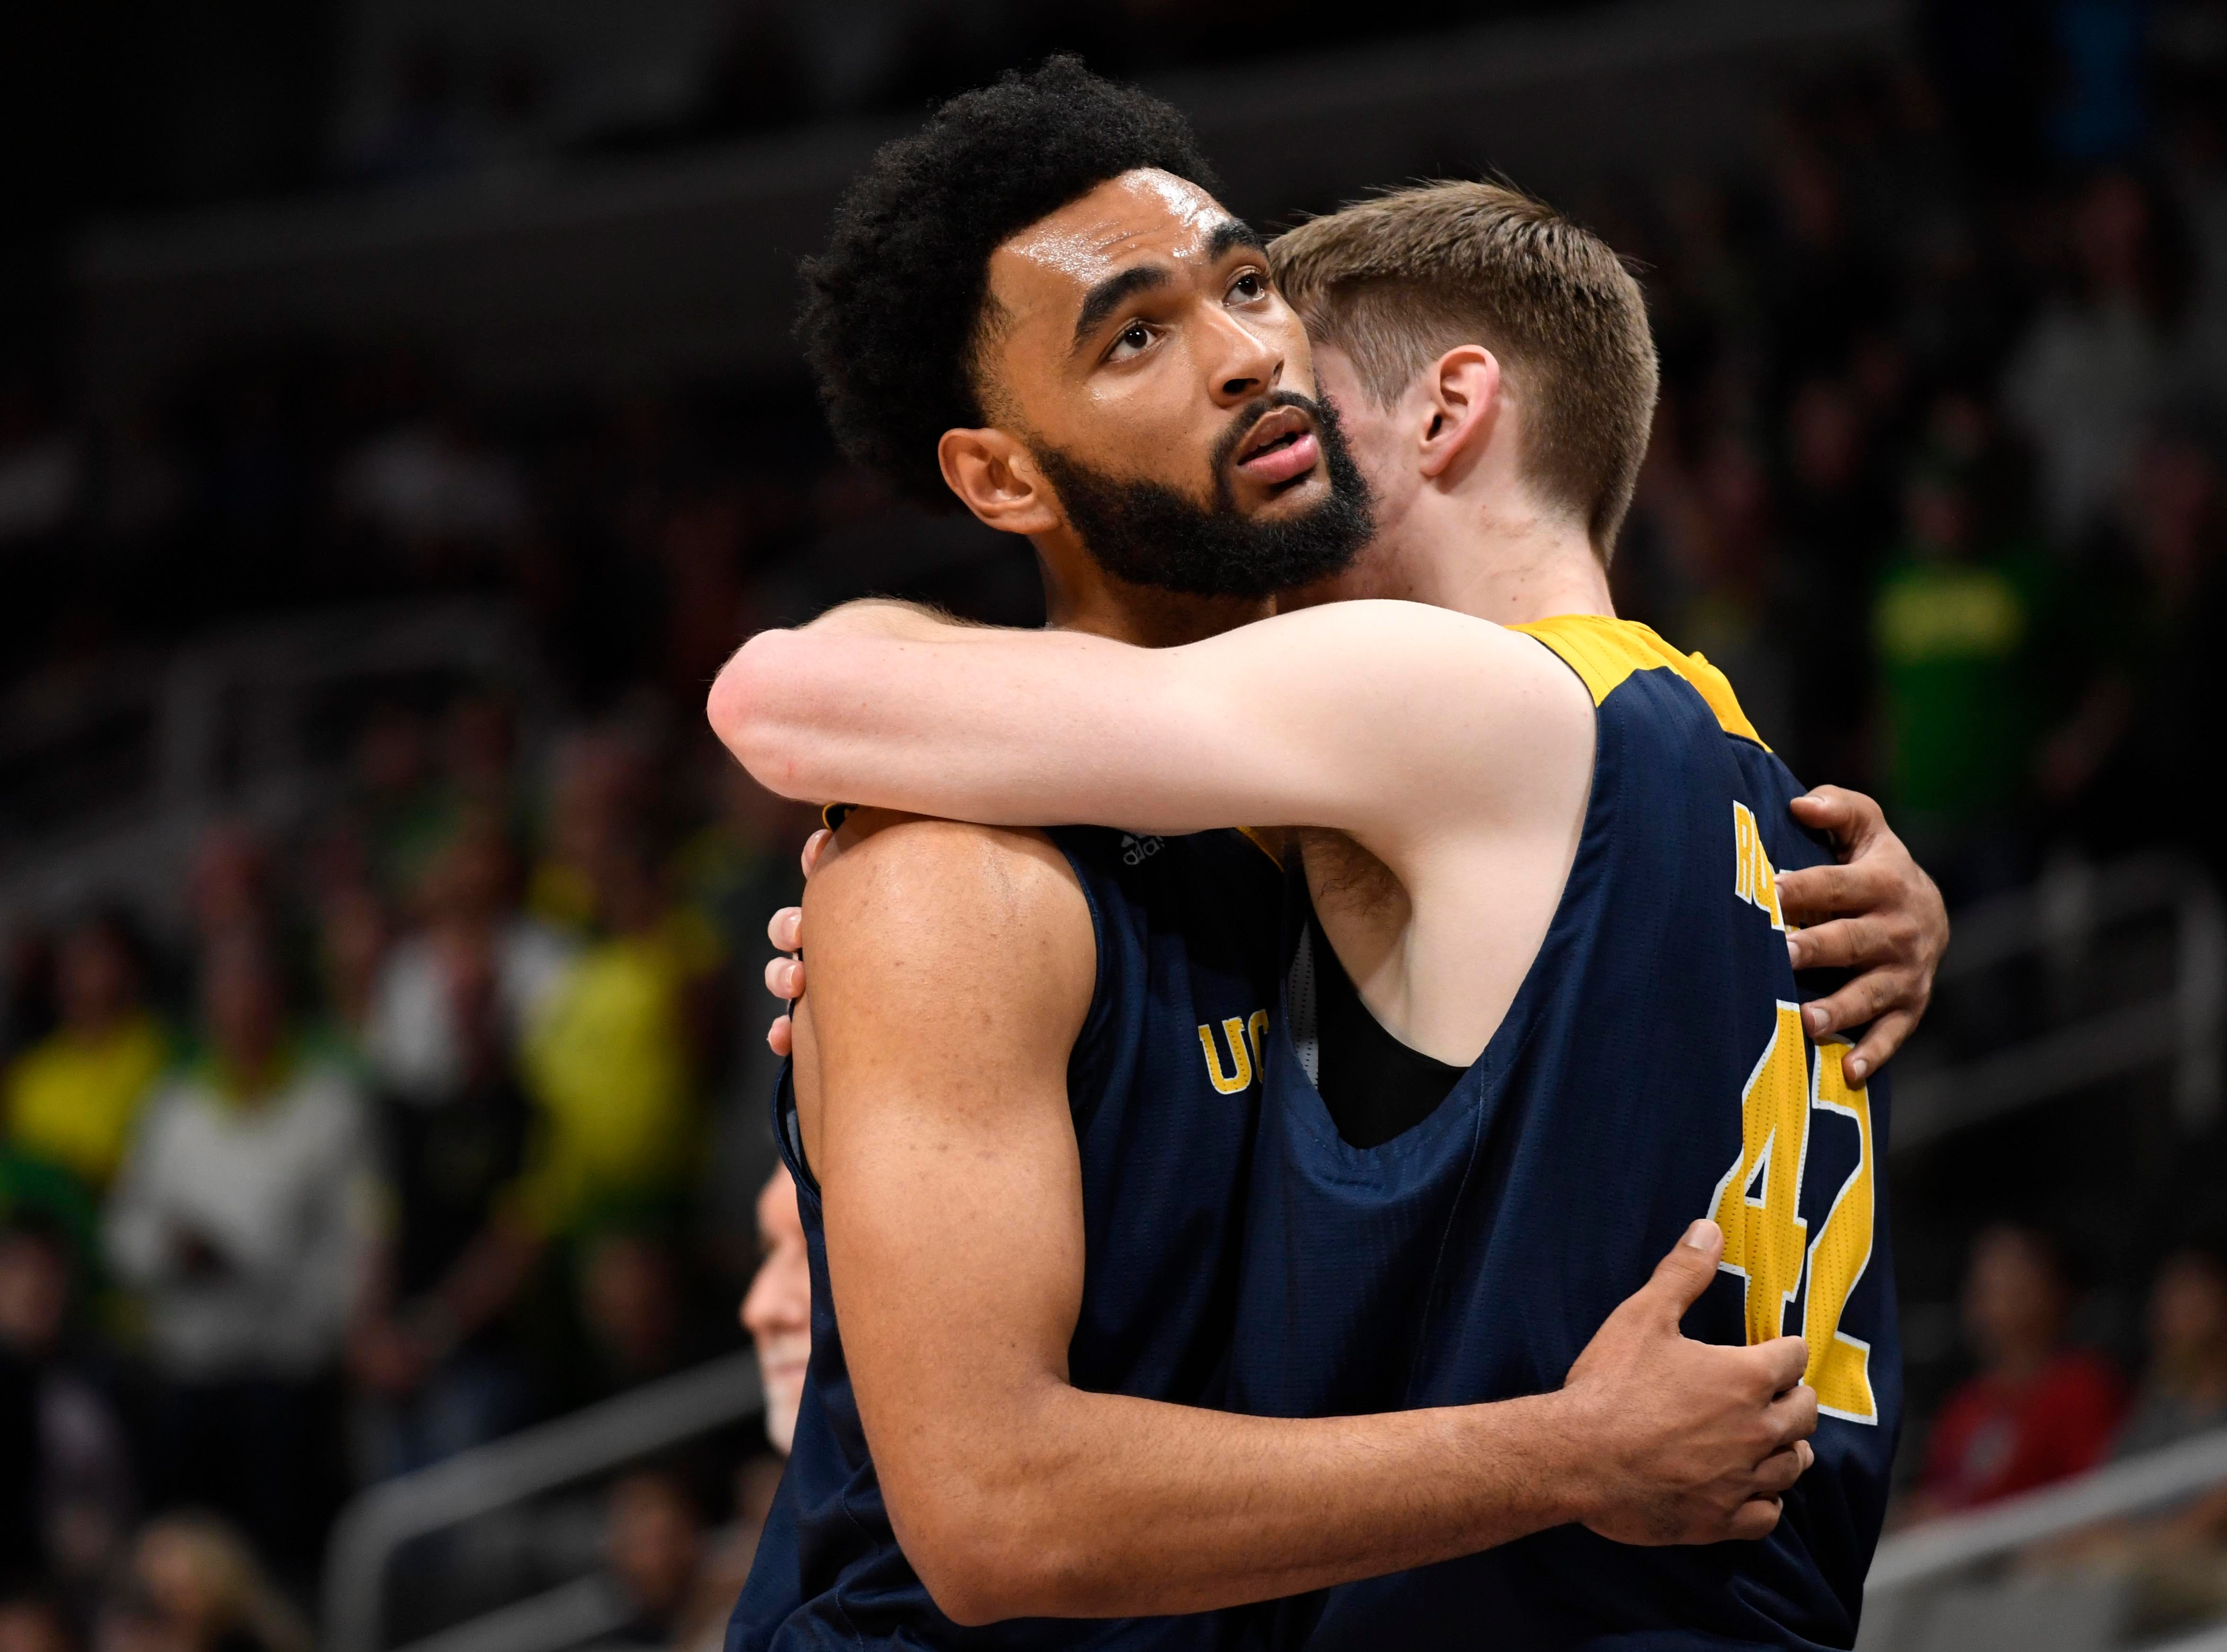 Round of 32: No. 13 UC Irvine loses to No. 12 Oregon, 73-54.